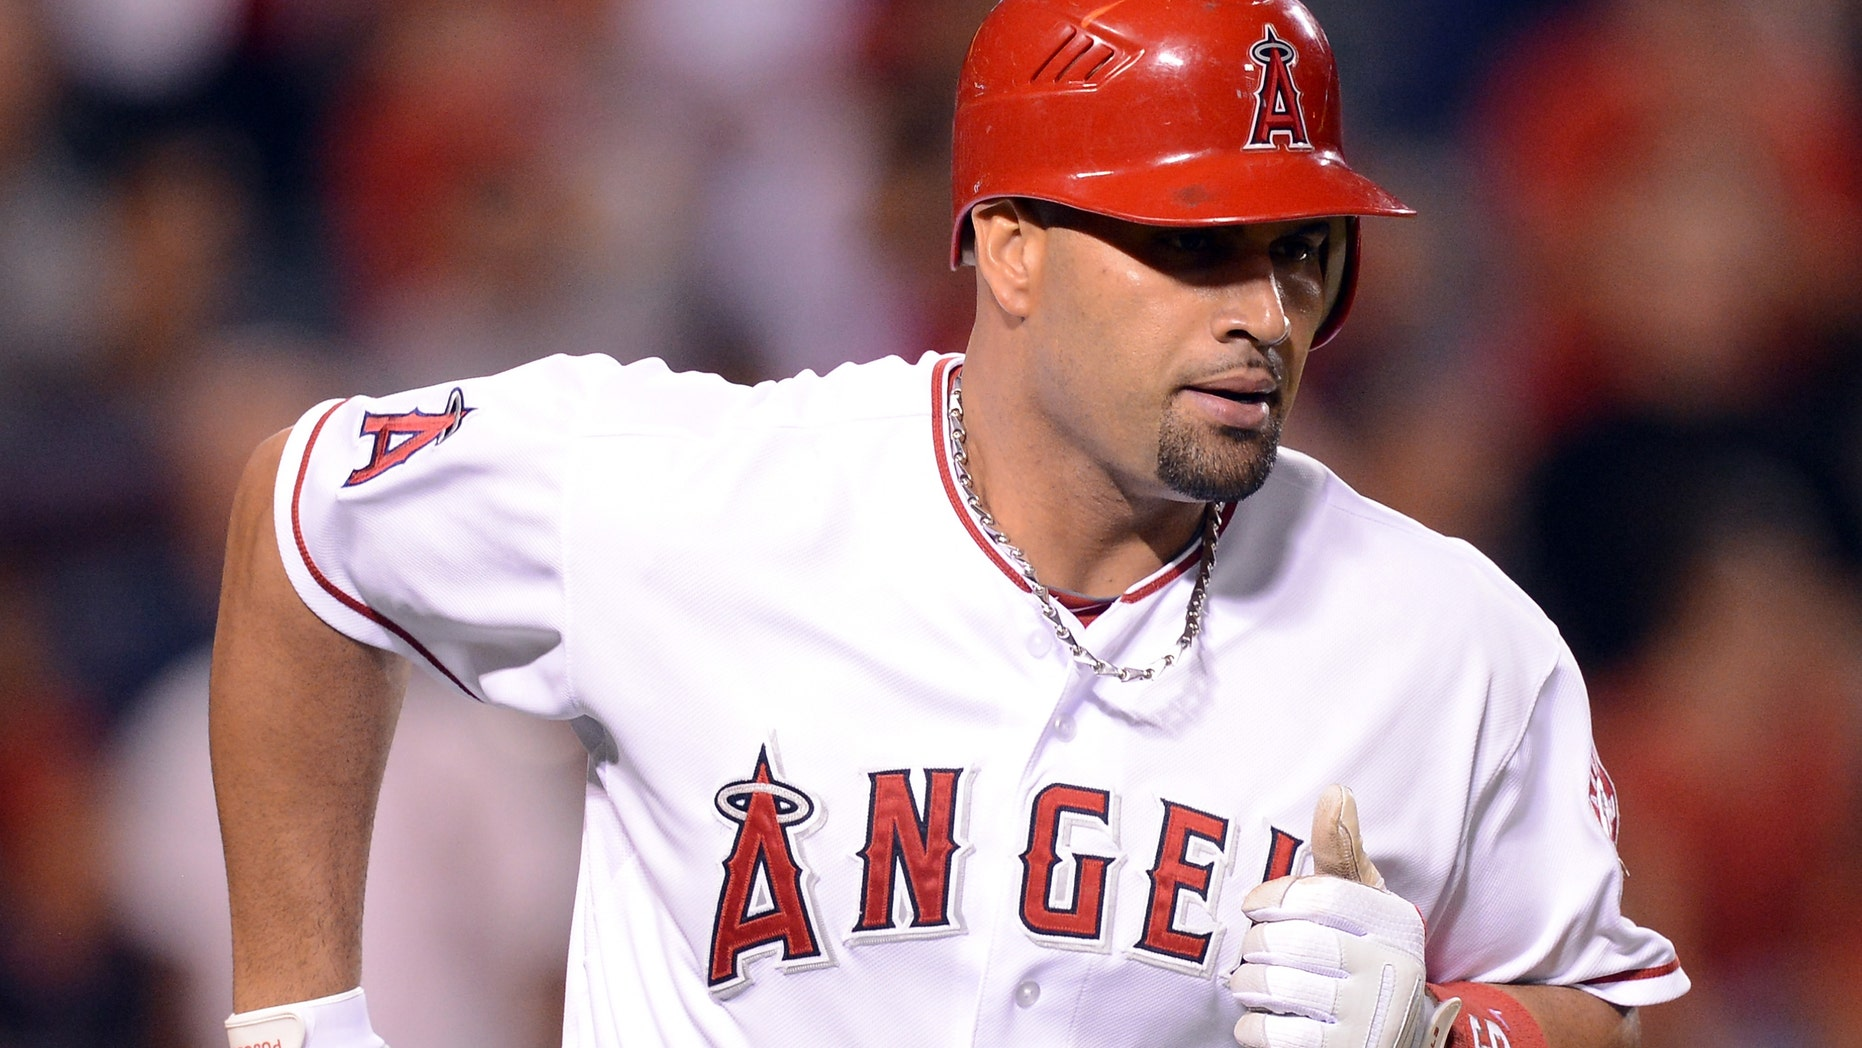 ANAHEIM, CA - SEPTEMBER 12:  Albert Pujols #5 of the Los Angeles Angels reacts to his homerun to become the first player to hit at least 30 homeruns in each of his first 12 seasons during the ninth inning against the Oakland Athletics at Angel Stadium of Anaheim on September 12, 2012 in Anaheim, California.  (Photo by Harry How/Getty Images)